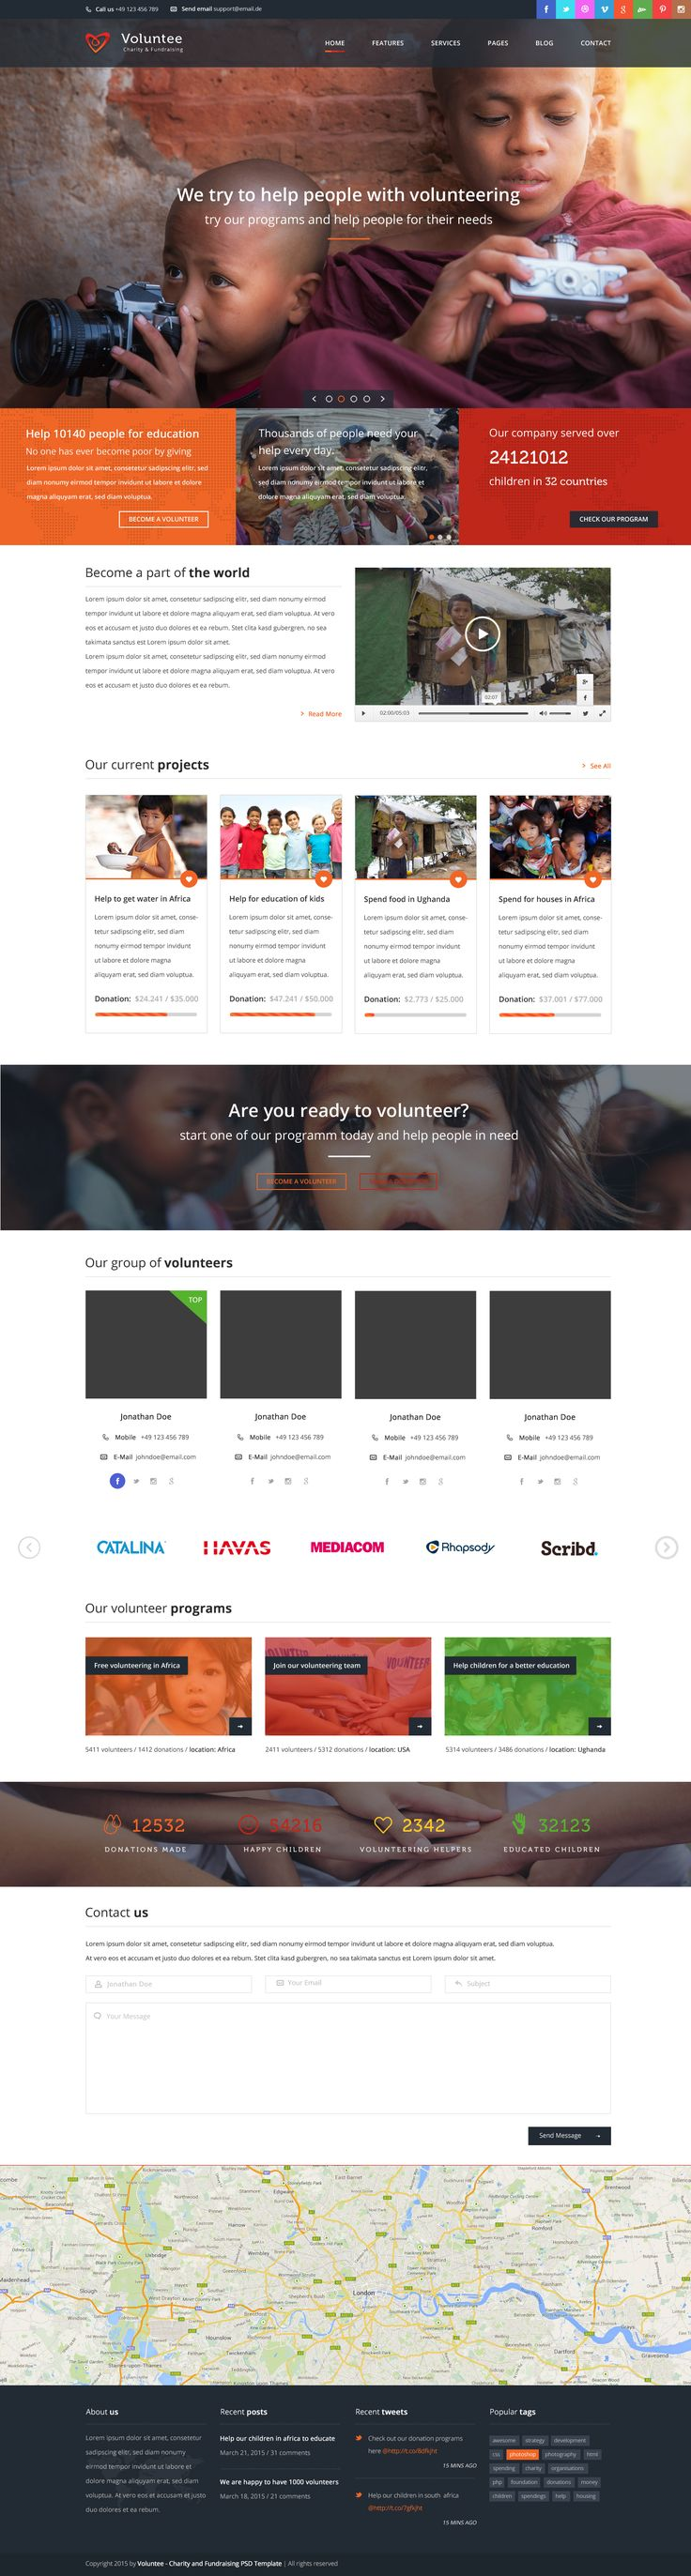 Voluntee is a WordPress Theme is created for non-profit websites, like governmental social program websites, NGO, Donation and fundraising websites, etc. Voluntee is a charity template, as well as a non profit theme for any social organizations, funds and donation campaigns.